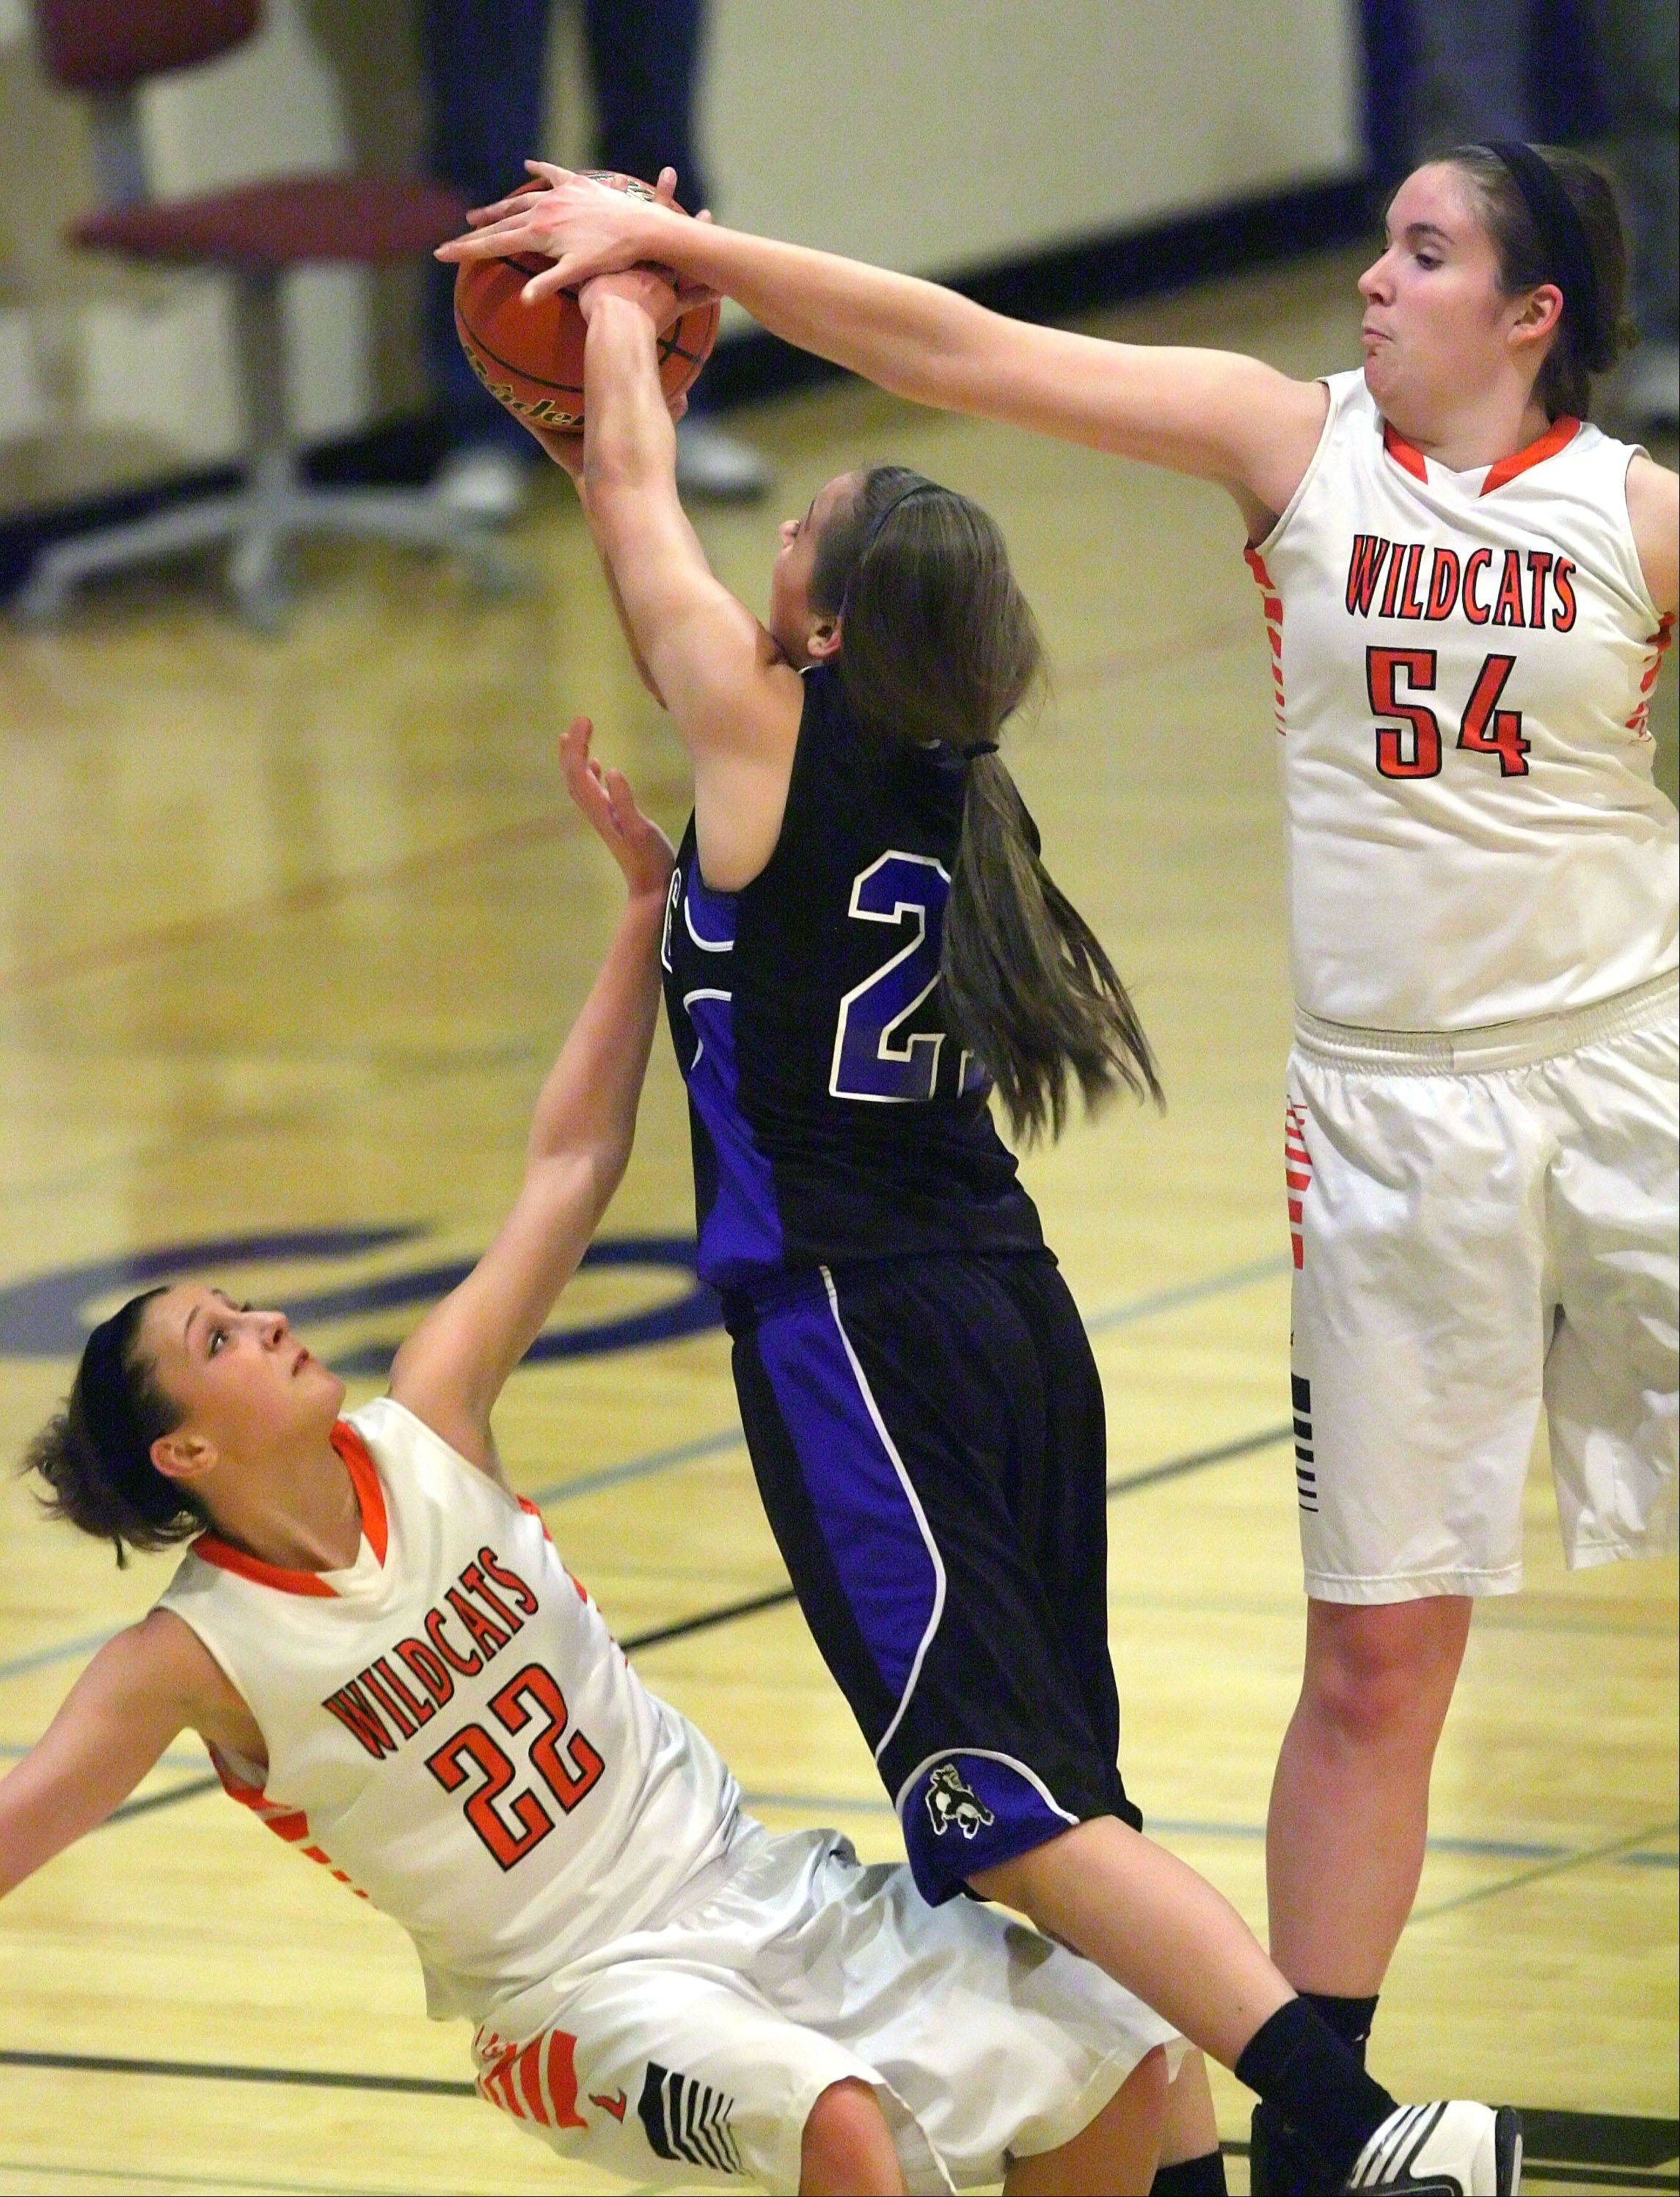 Libertyville surges past Wheeling